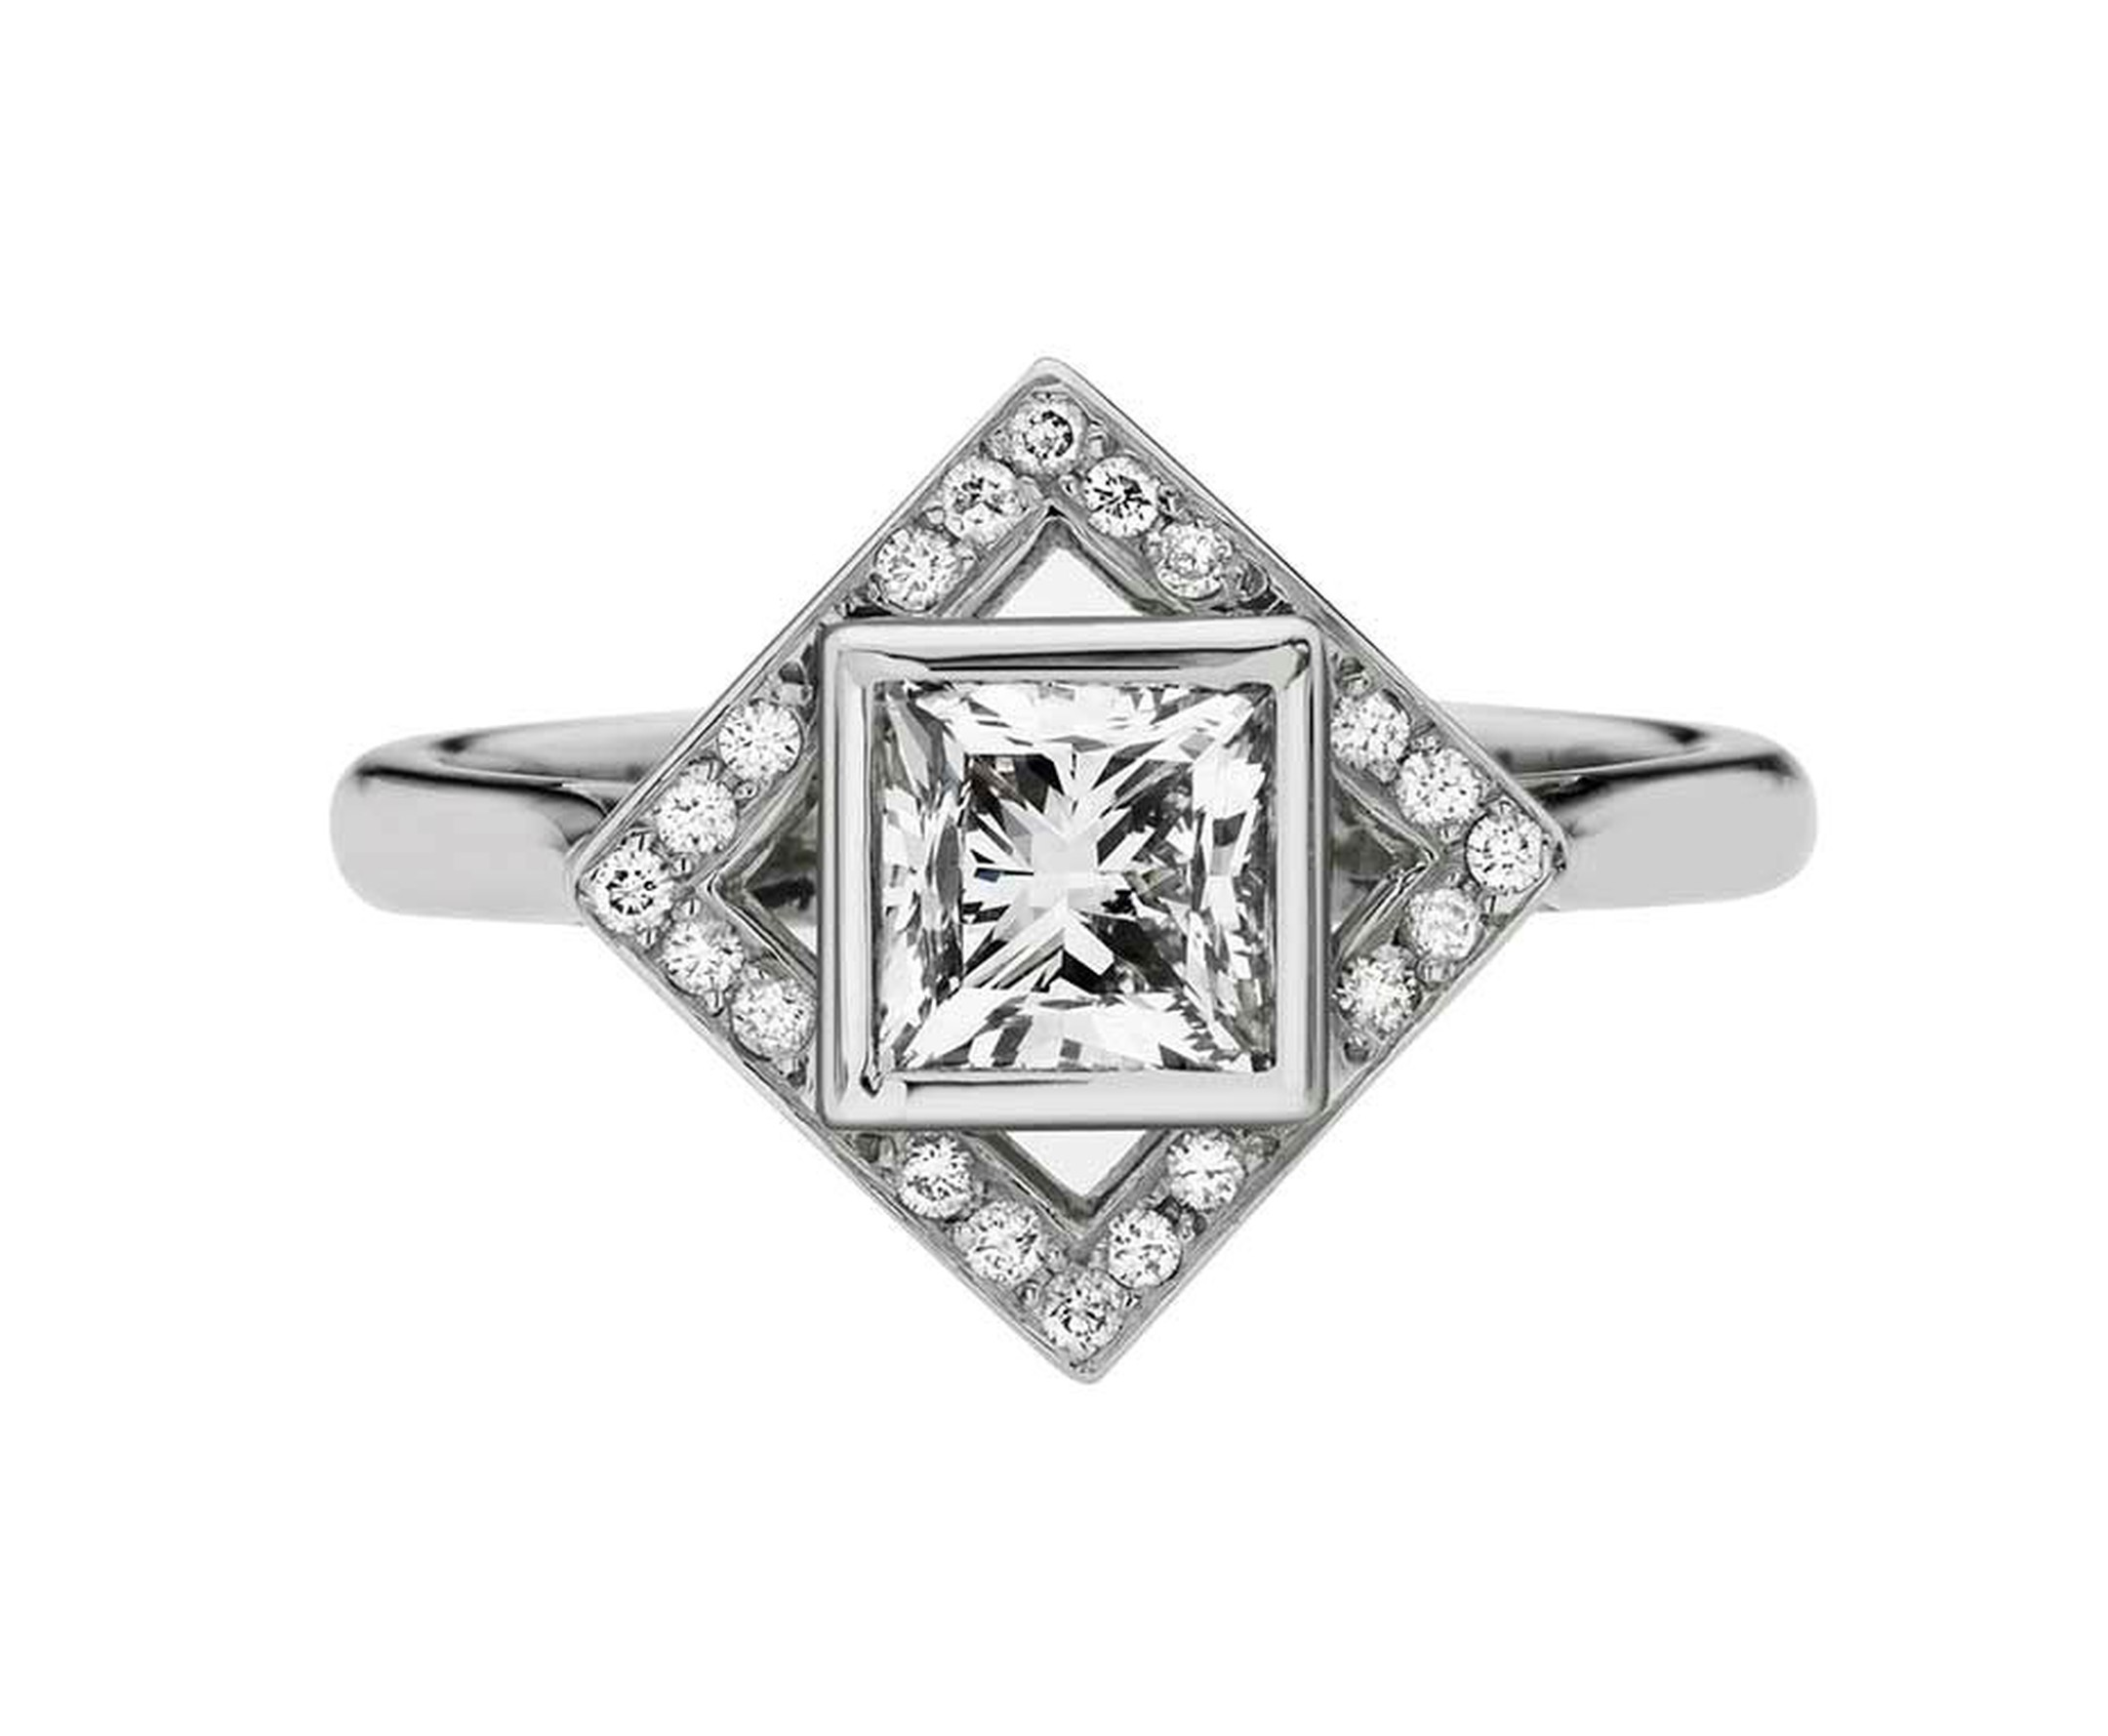 Ethan and Co. princess-cut diamond solitaire ring surrounded by a square of diamond pavé tilted at a different angle to the central stone.